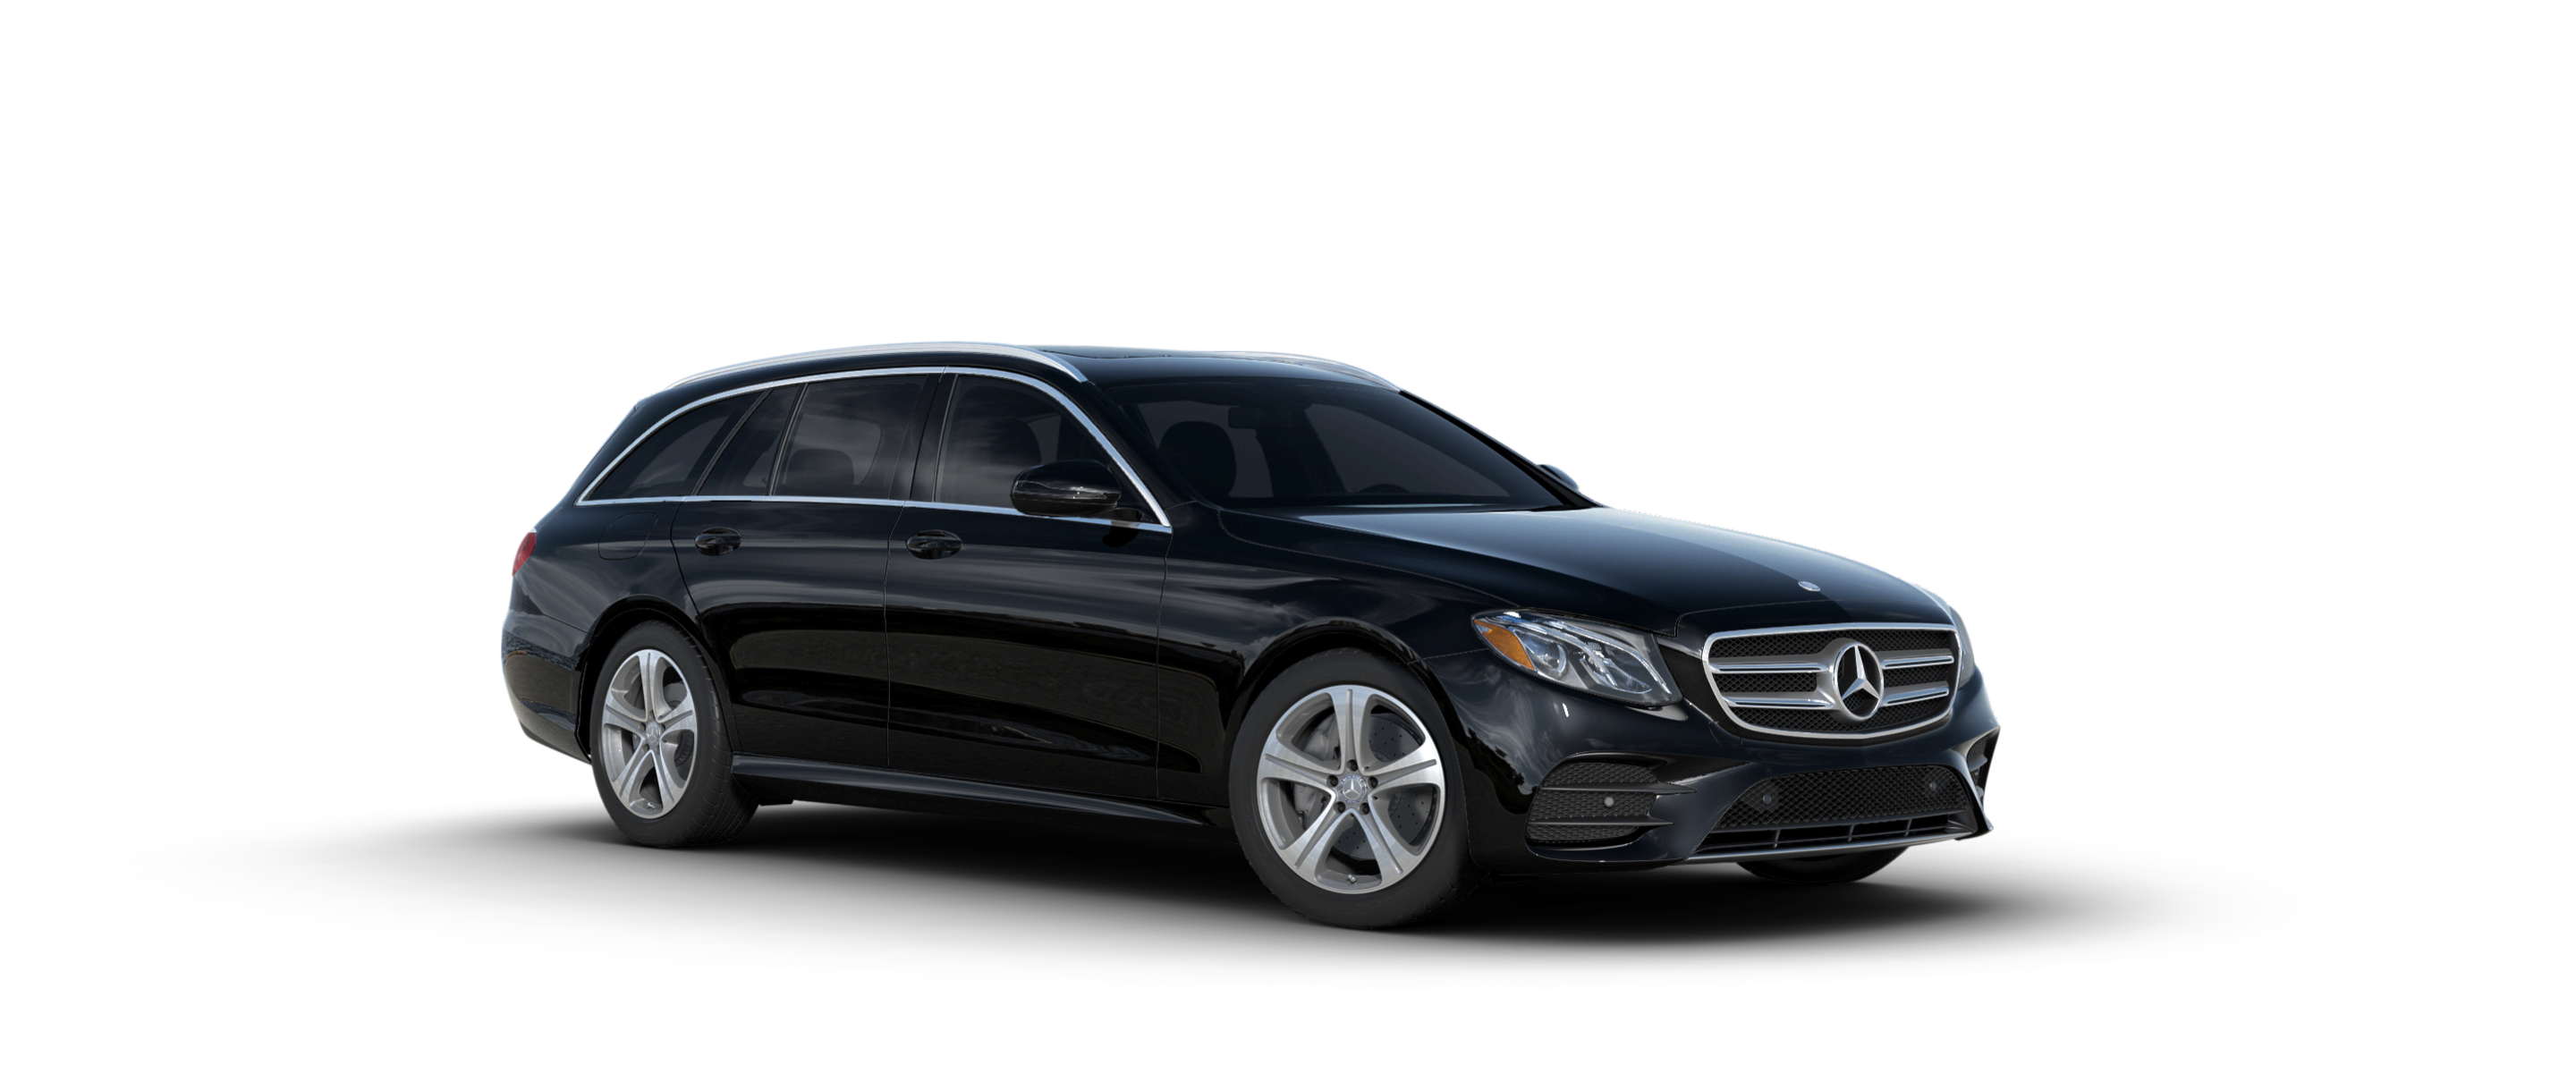 new luxury car releasesSports Cars Luxury Cars and Vehicles from MercedesBenz